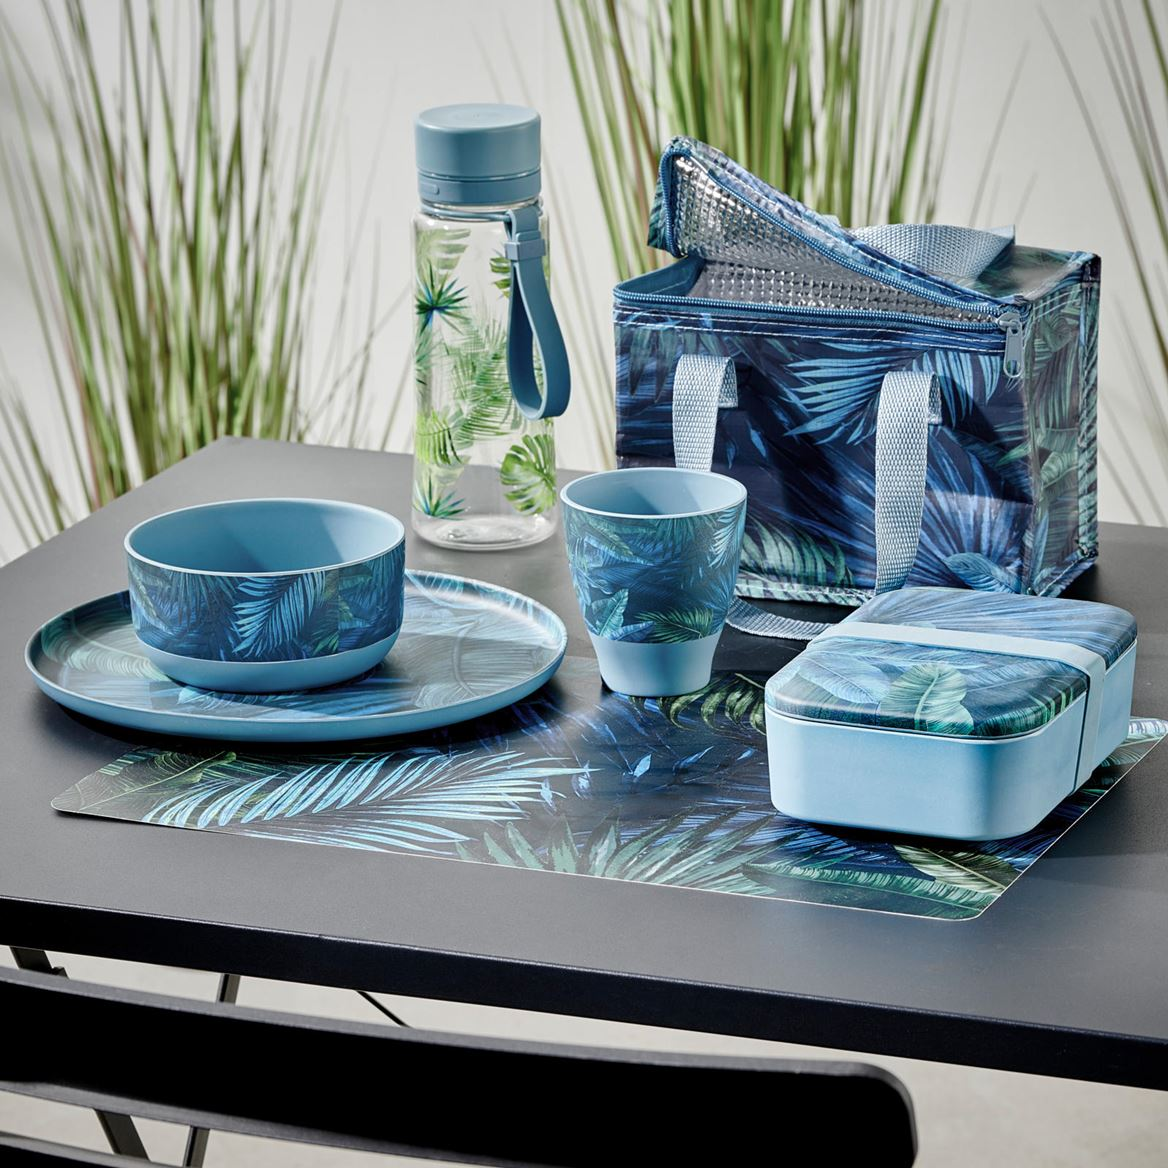 LAGUNA Set de table vert, bleu Larg. 29 x Long. 42 cm_laguna-set-de-table-vert,-bleu-larg--29-x-long--42-cm